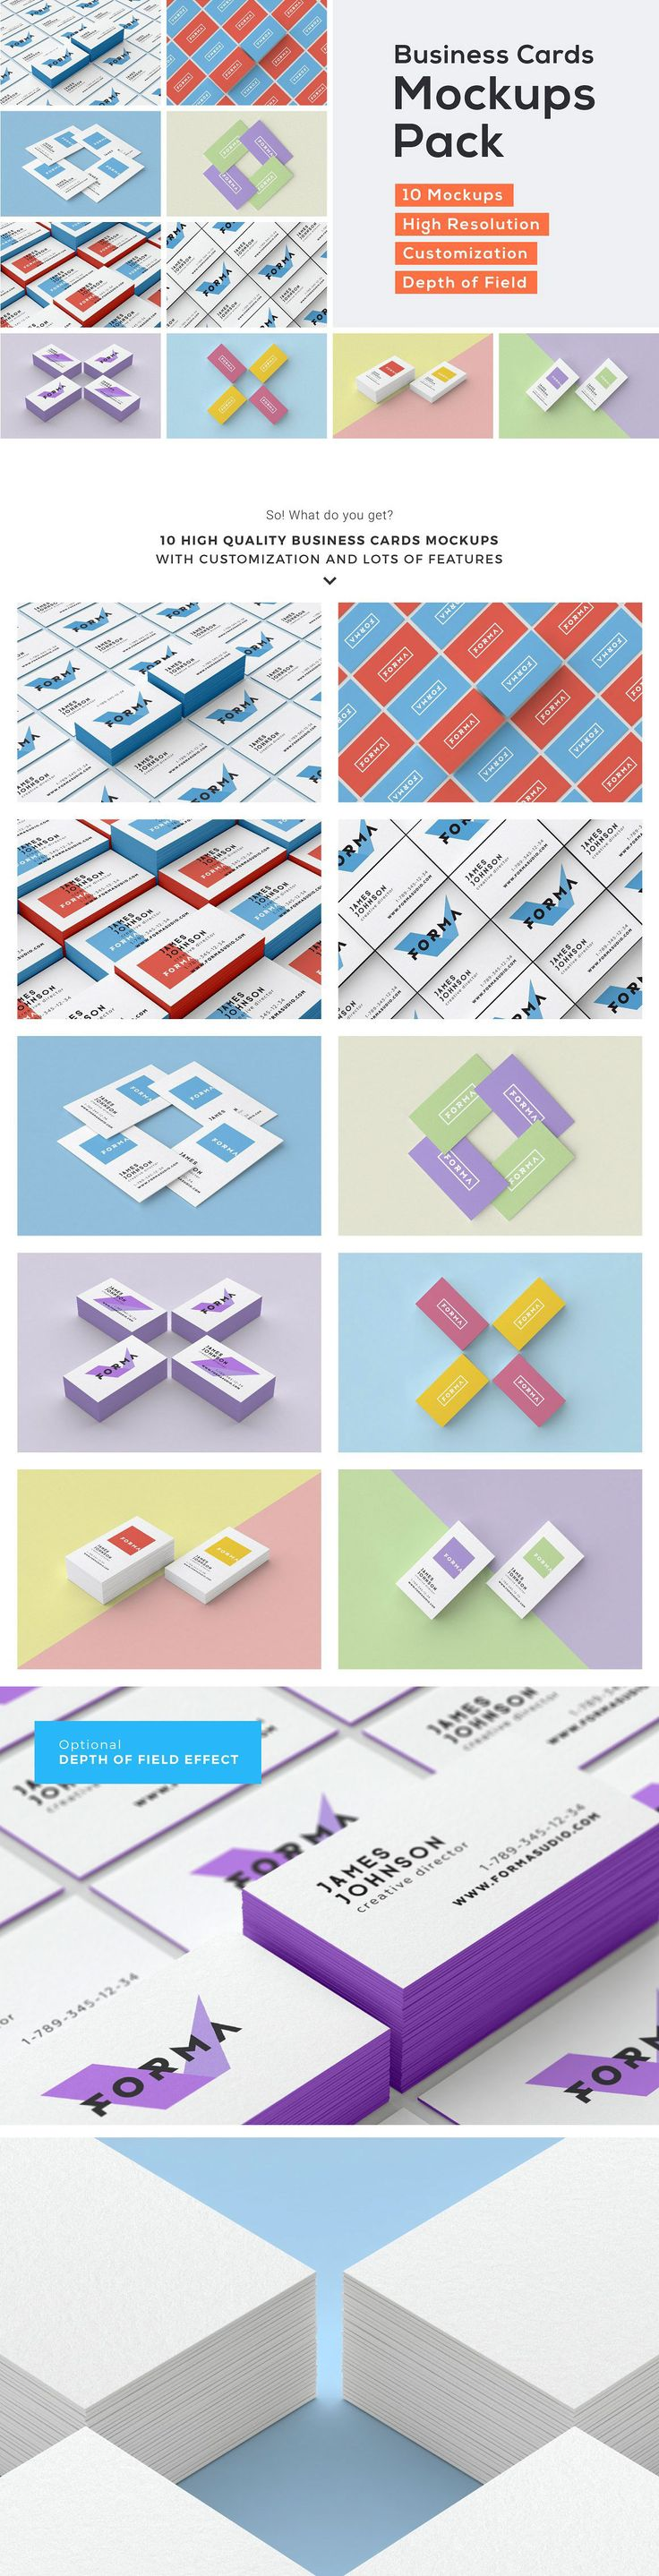 Best 25 High quality business cards ideas on Pinterest